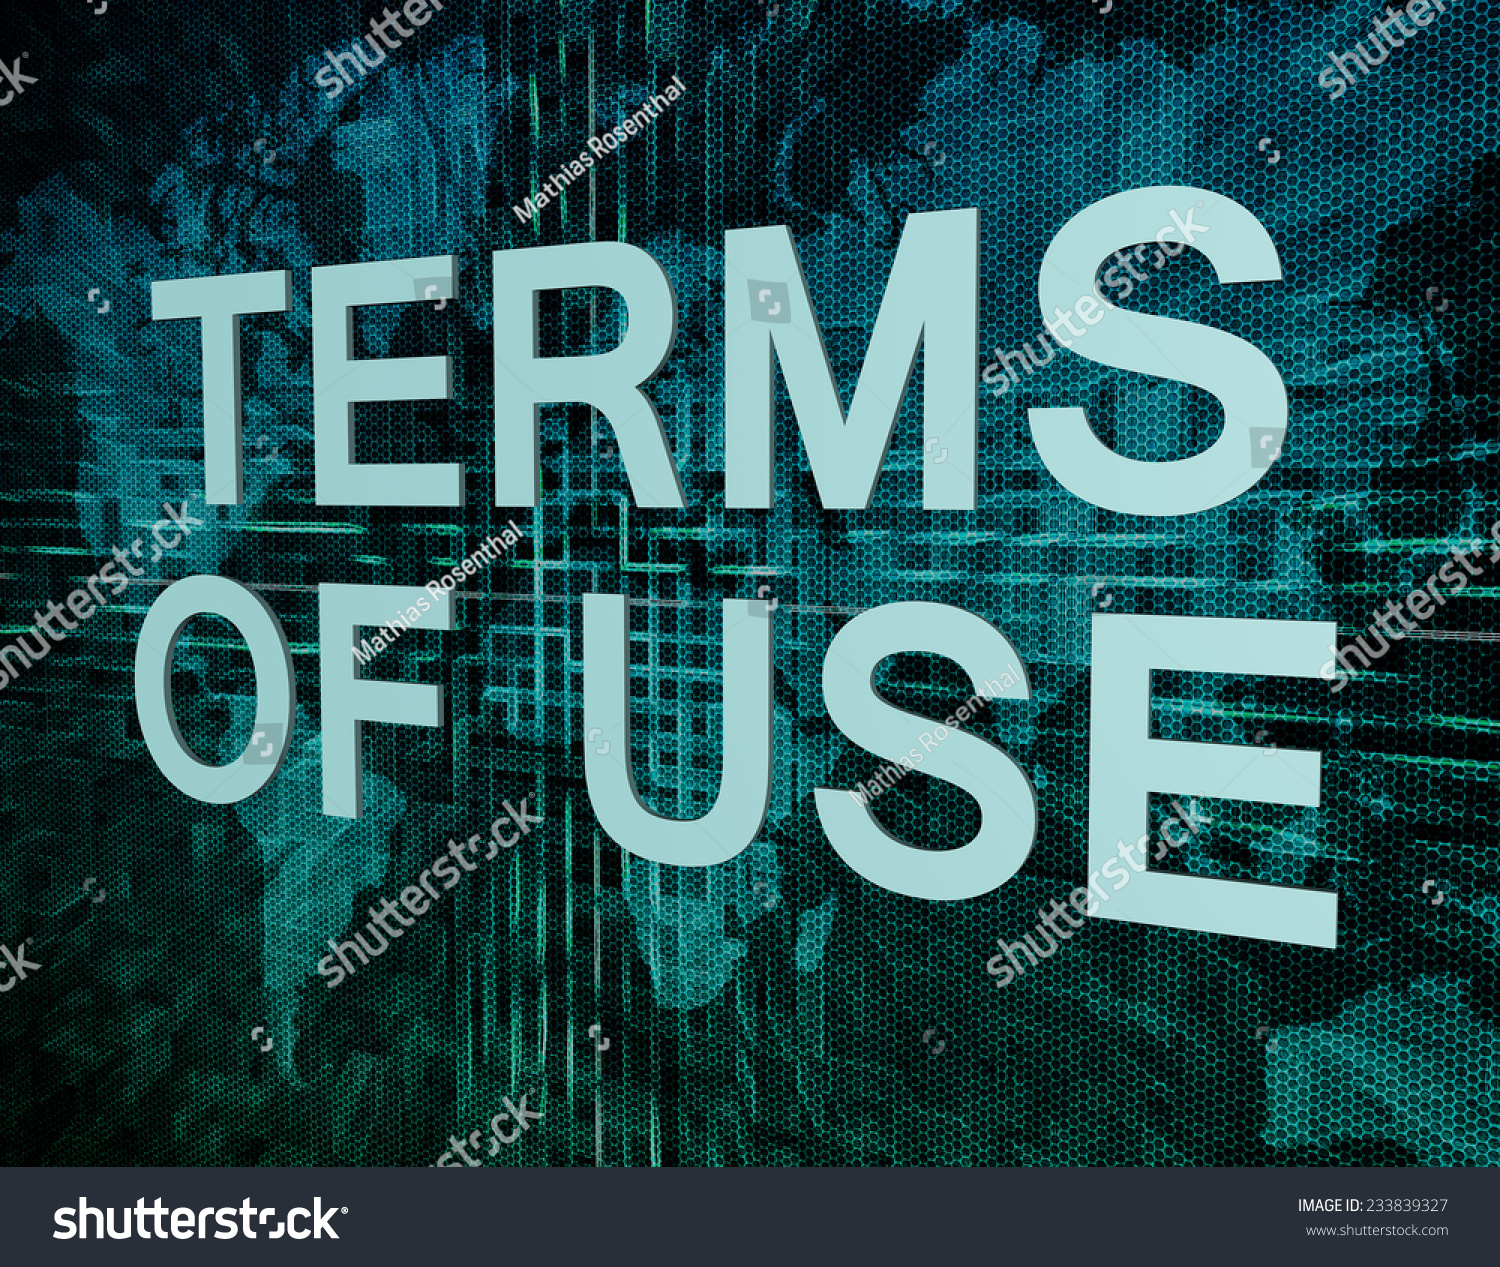 Terms Of Use: Terms Of Use Text Concept On Green Digital World Map